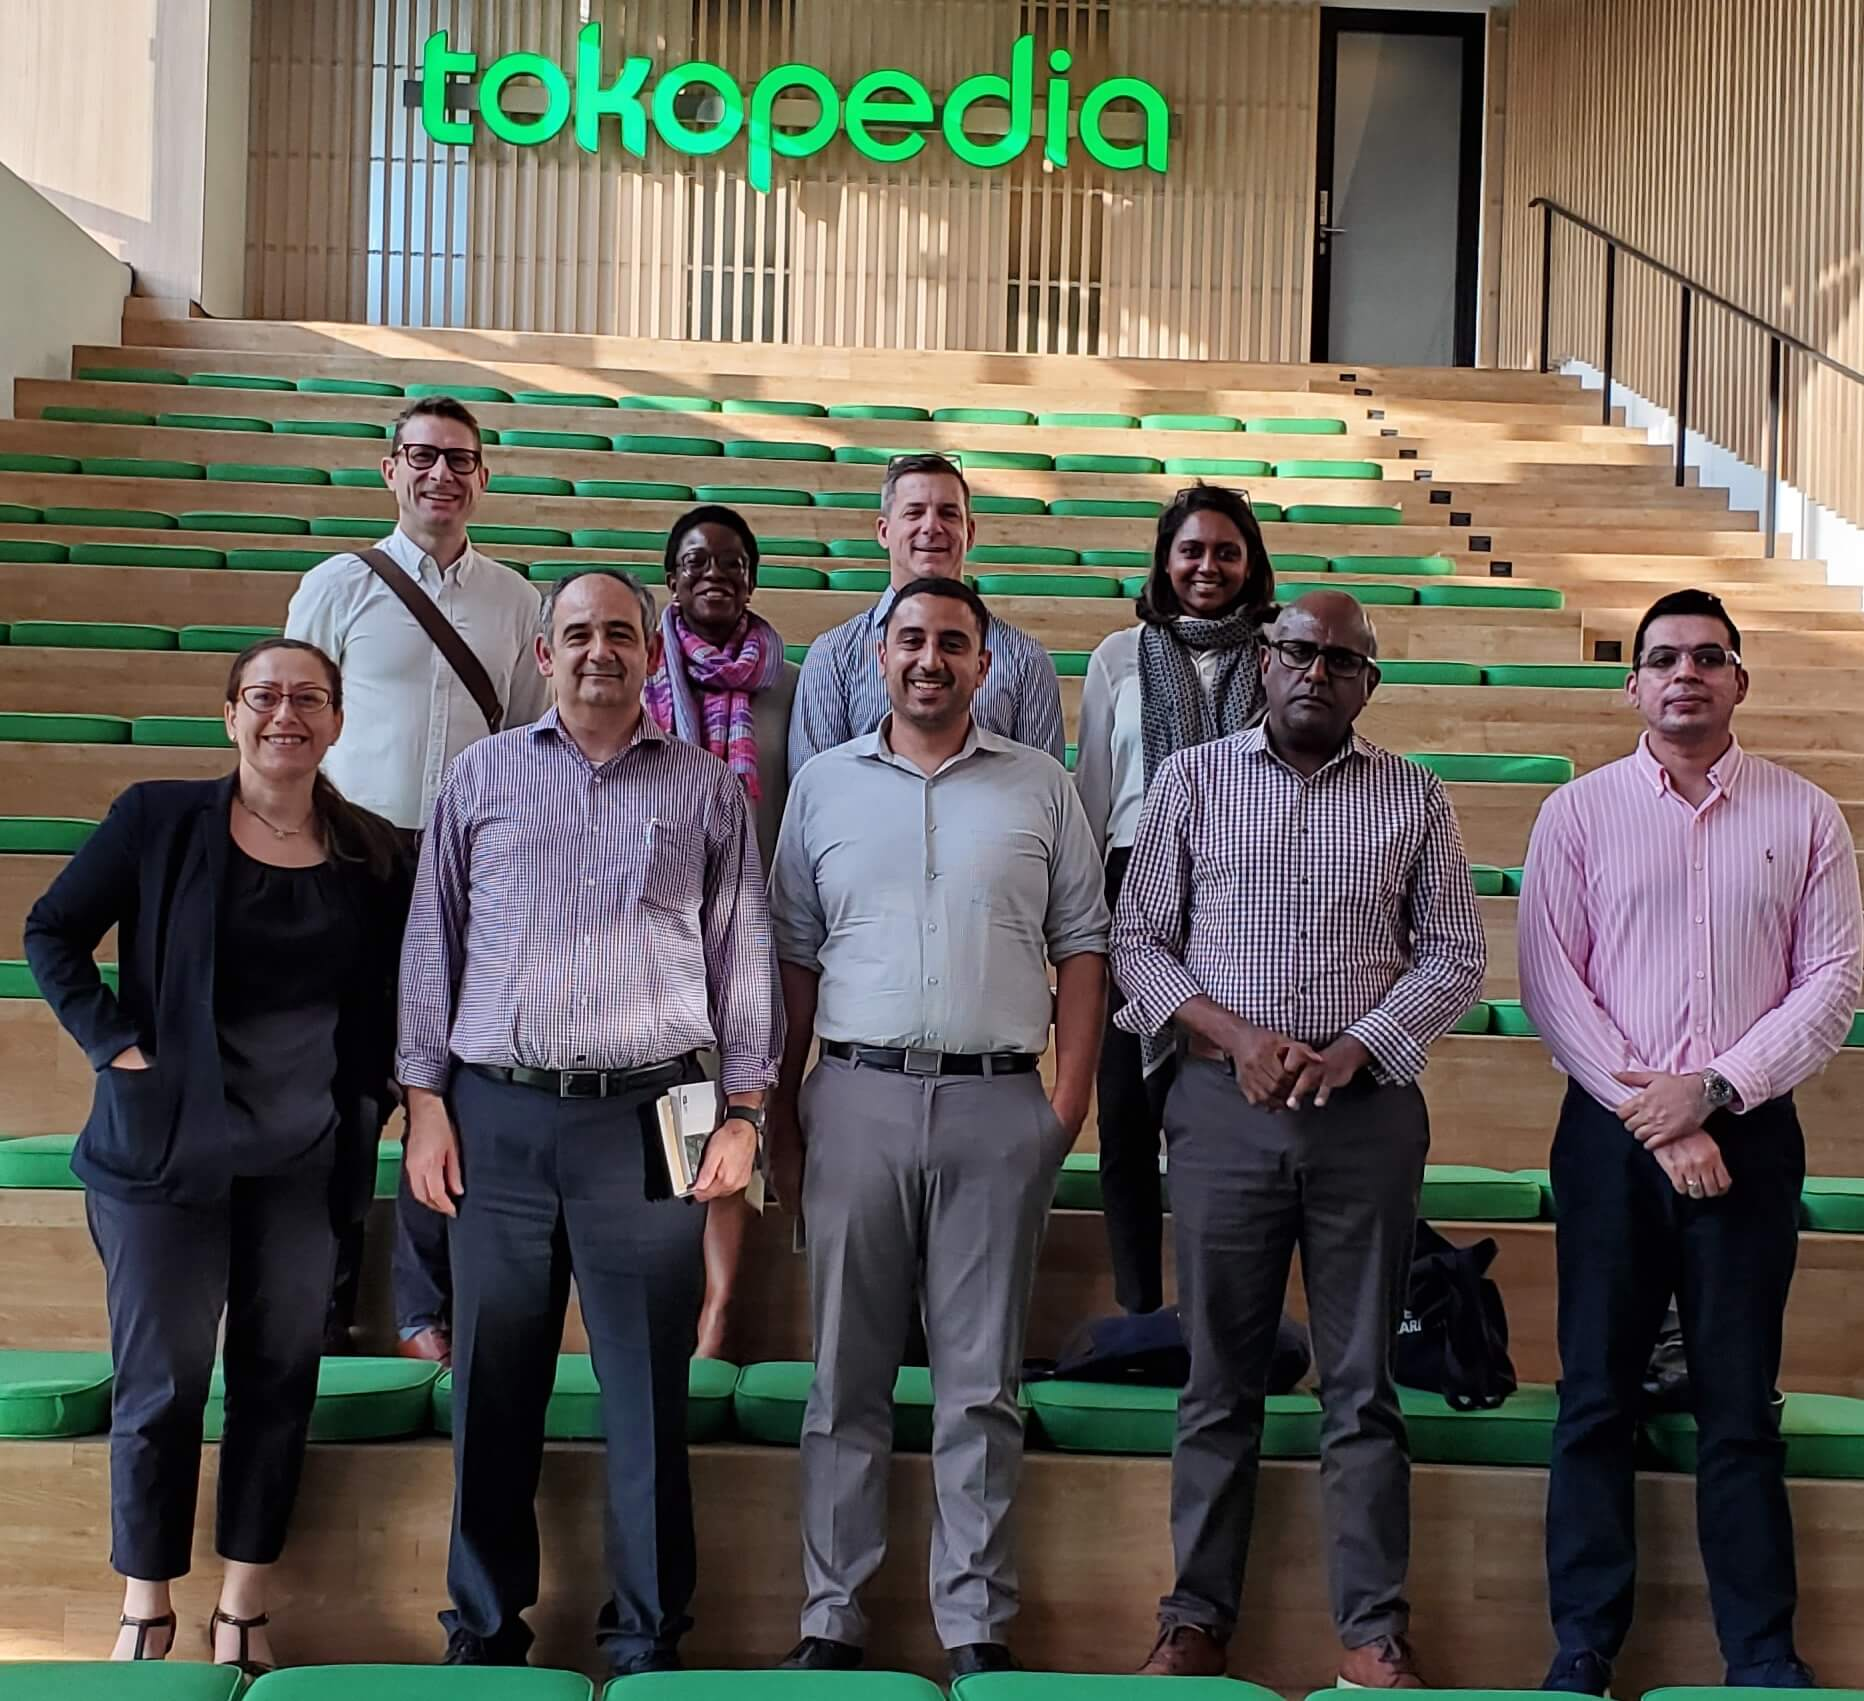 Live learning participants at Tokopedia's headquarters in Jakarta. Tokopedia generated an estimated 10 percent of all new jobs in Indonesia in 2018.